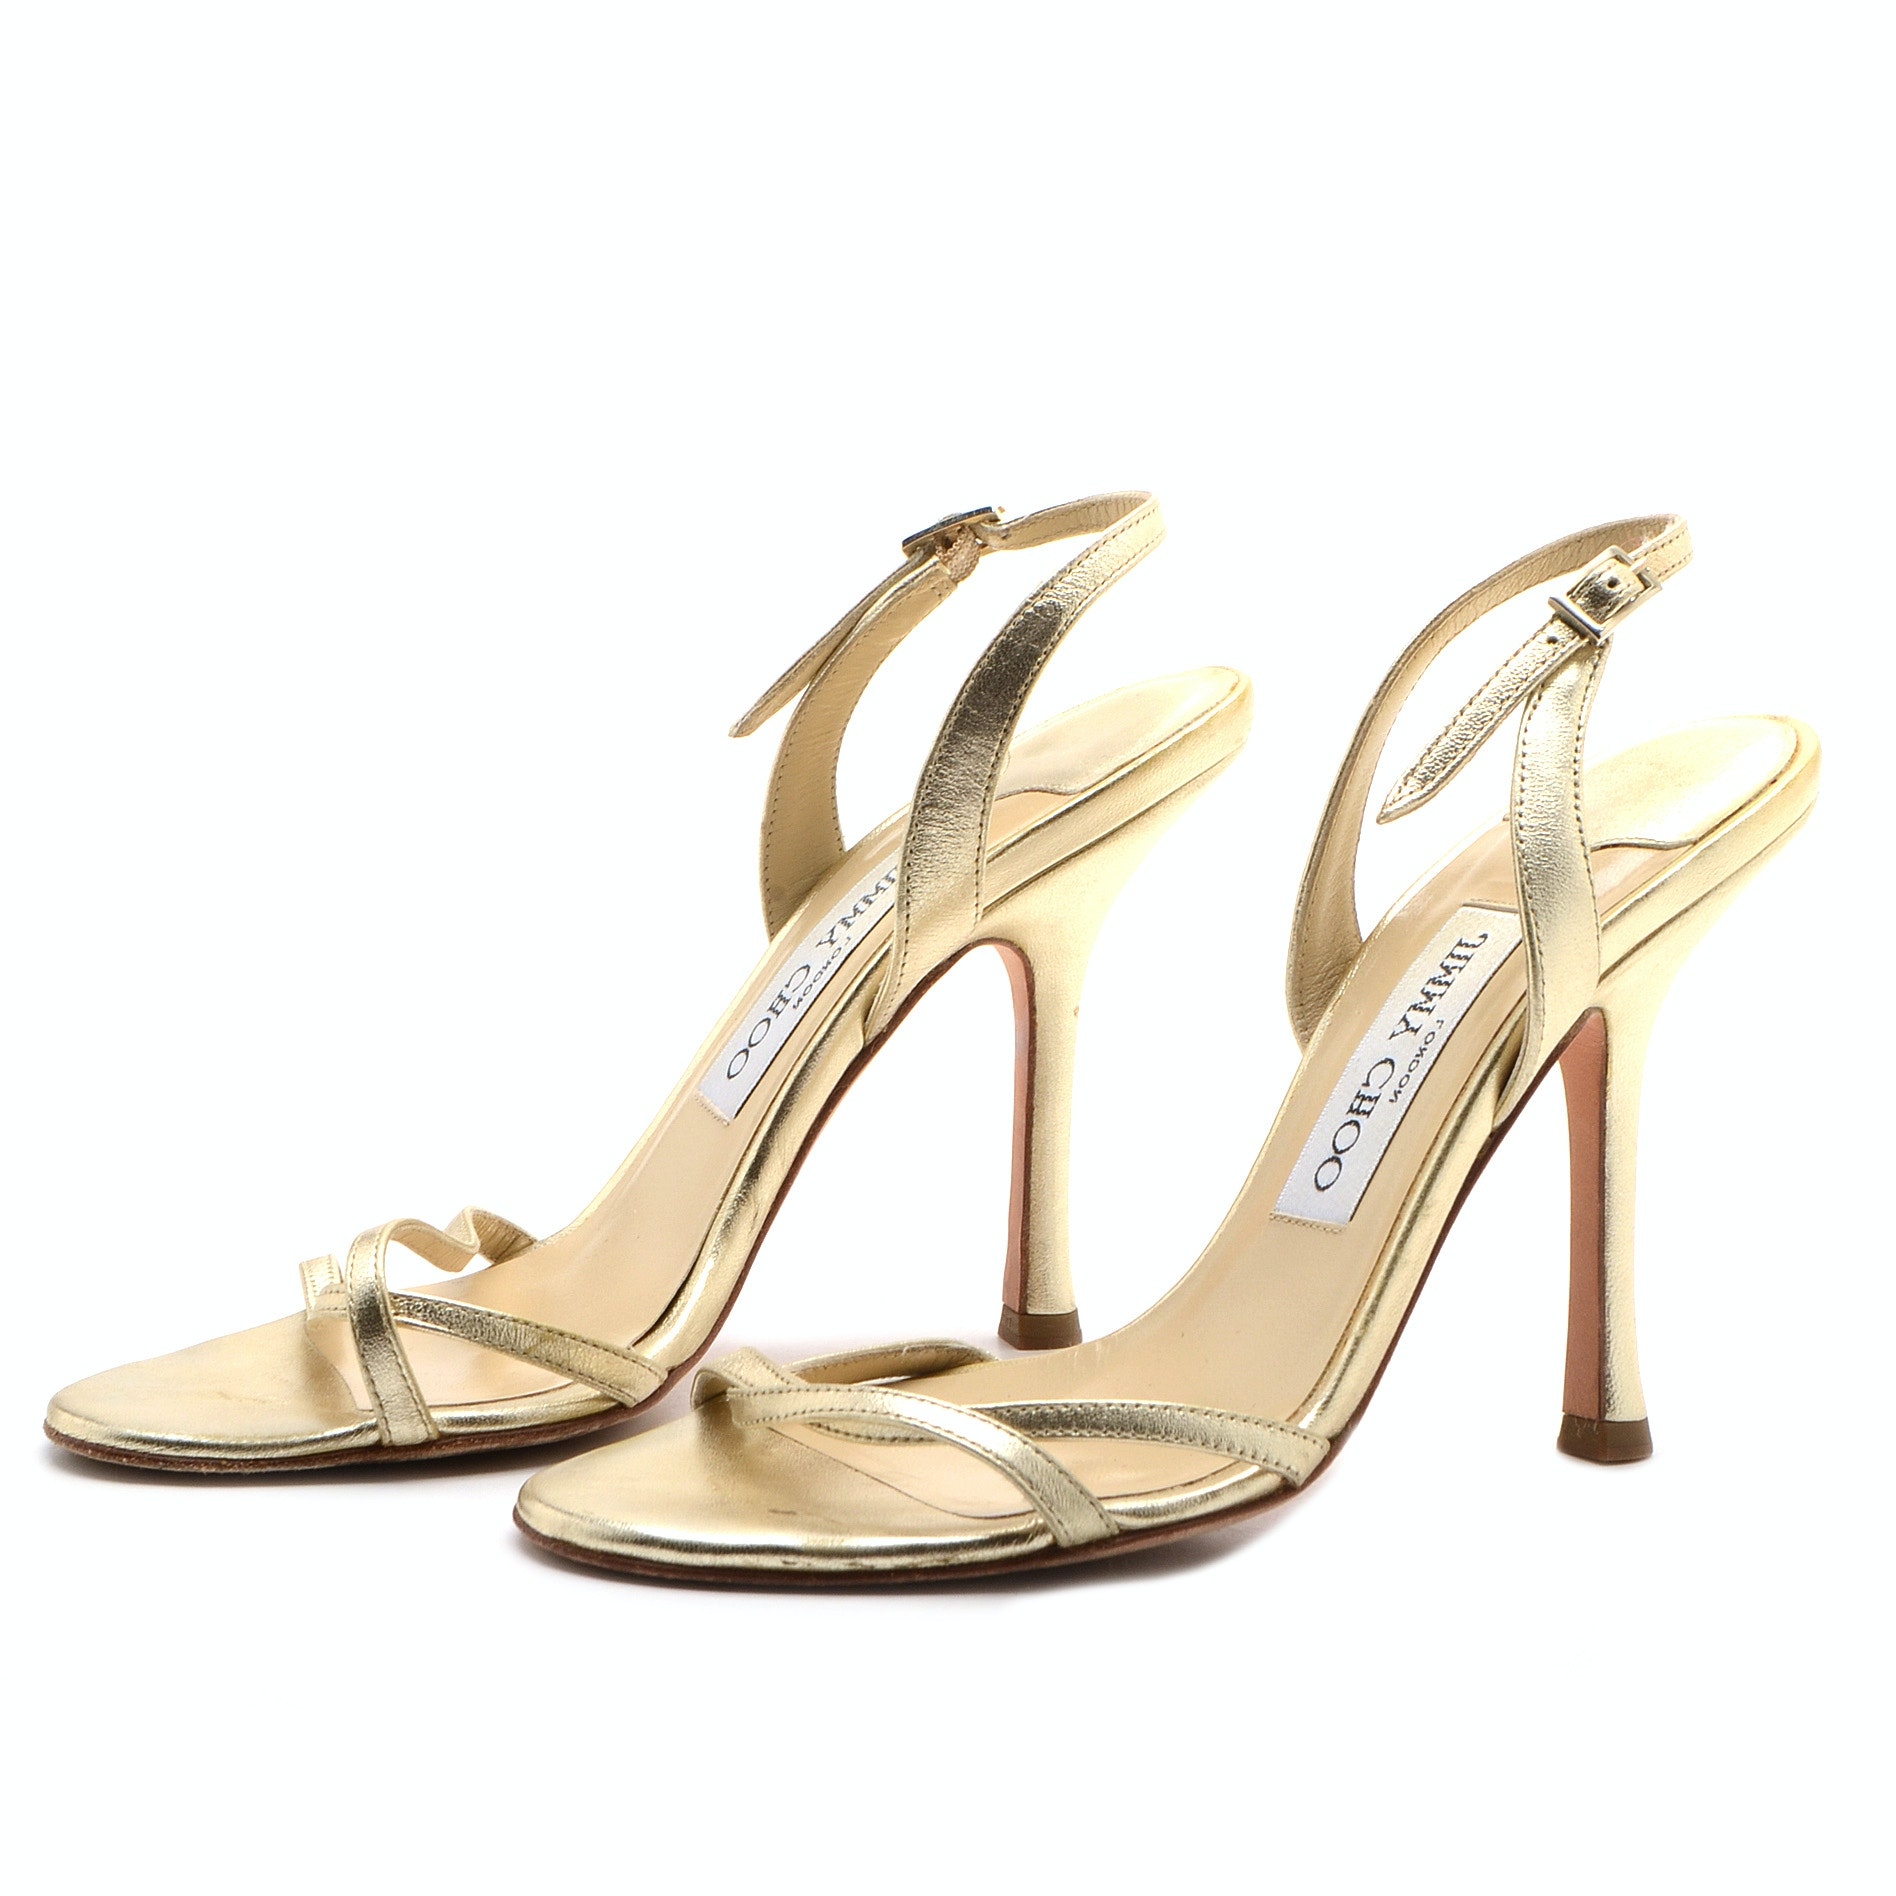 Jimmy Choo of London Gold Metallic Slingback Dress Sandals